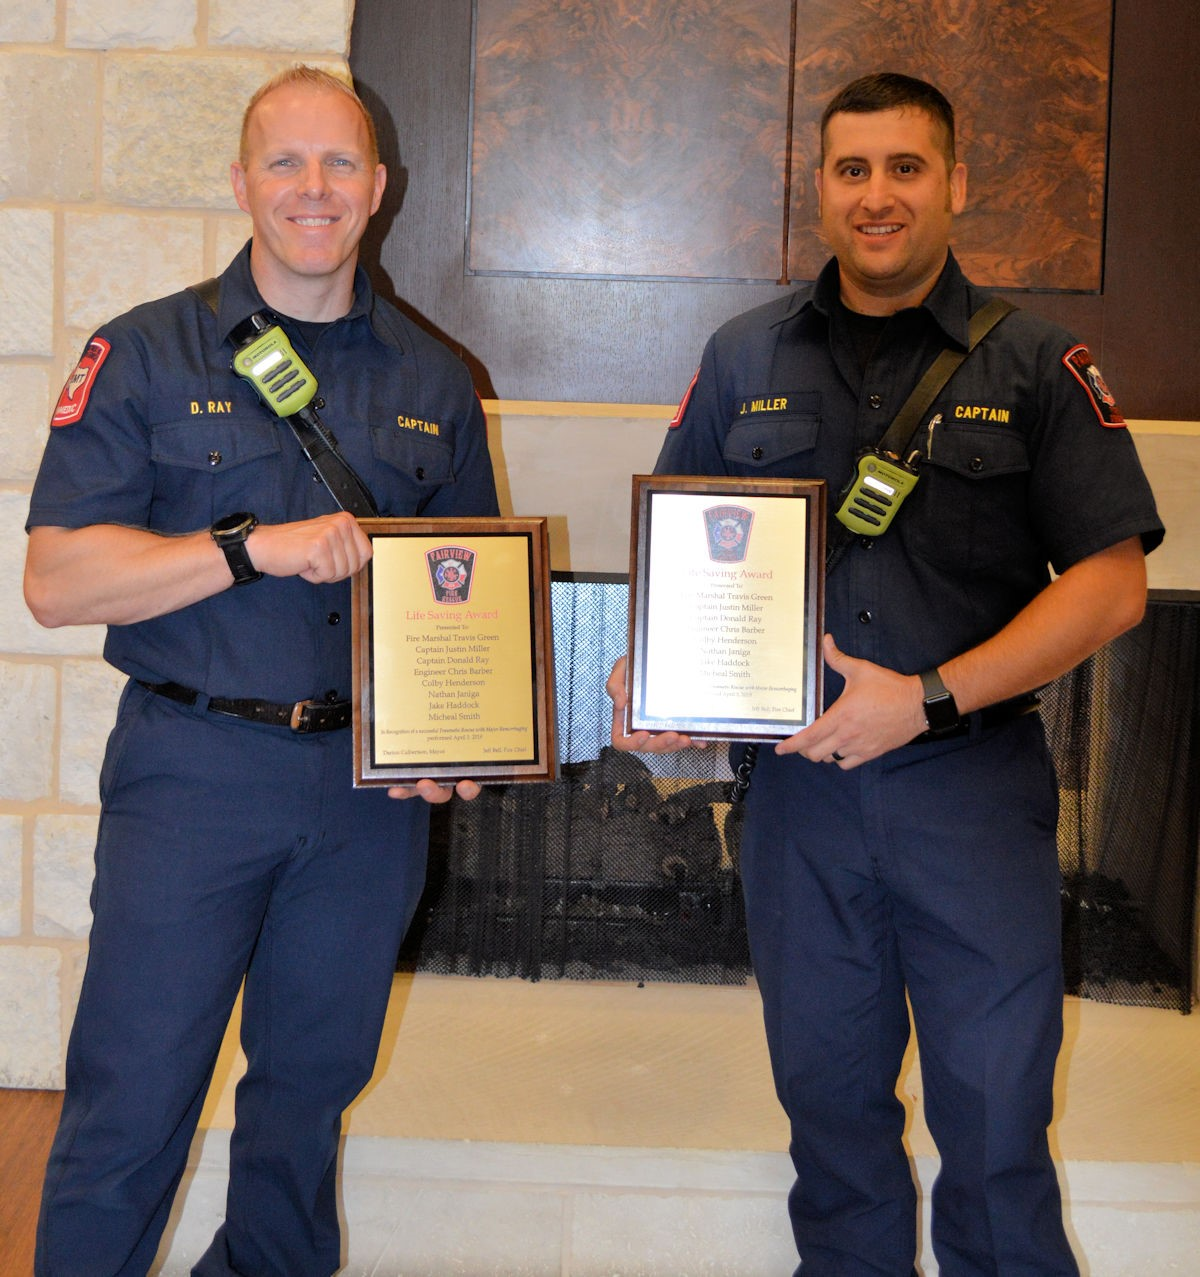 (From left) Captain Donald Ray and Captain Justin Miller during the Life Saving Certificate presentation.